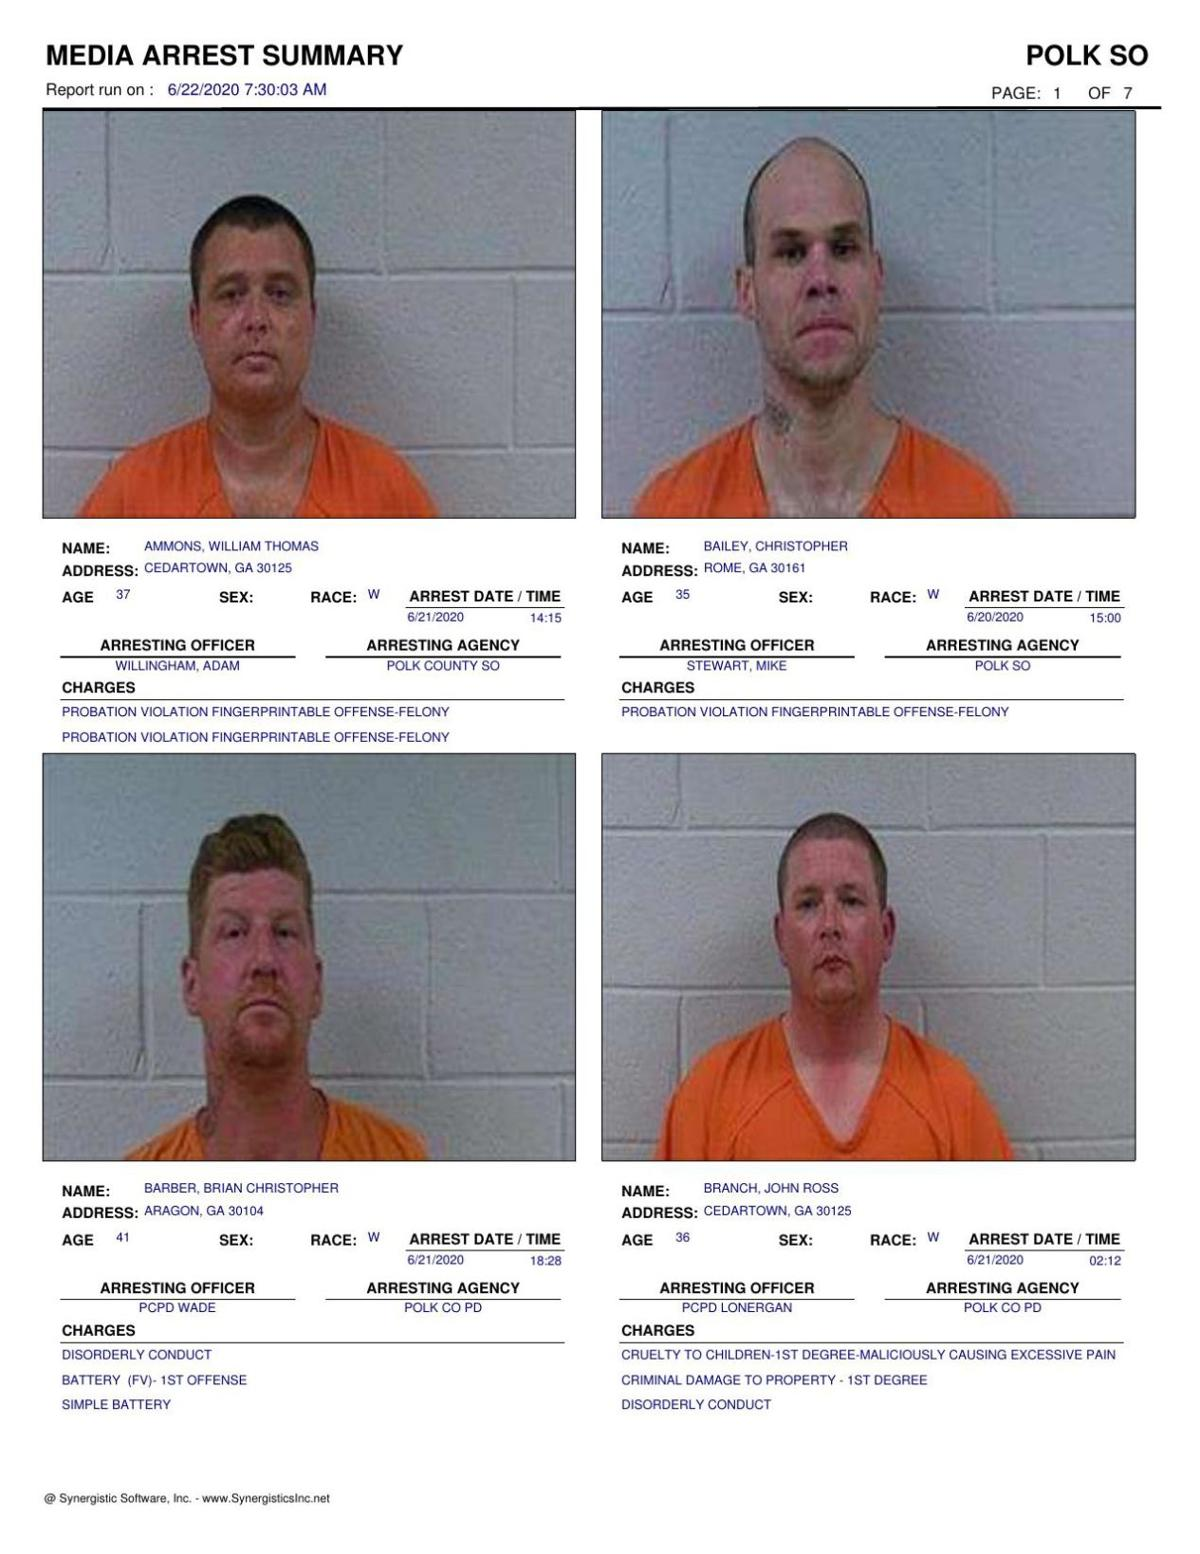 Polk County Jail Report for Monday, June 22